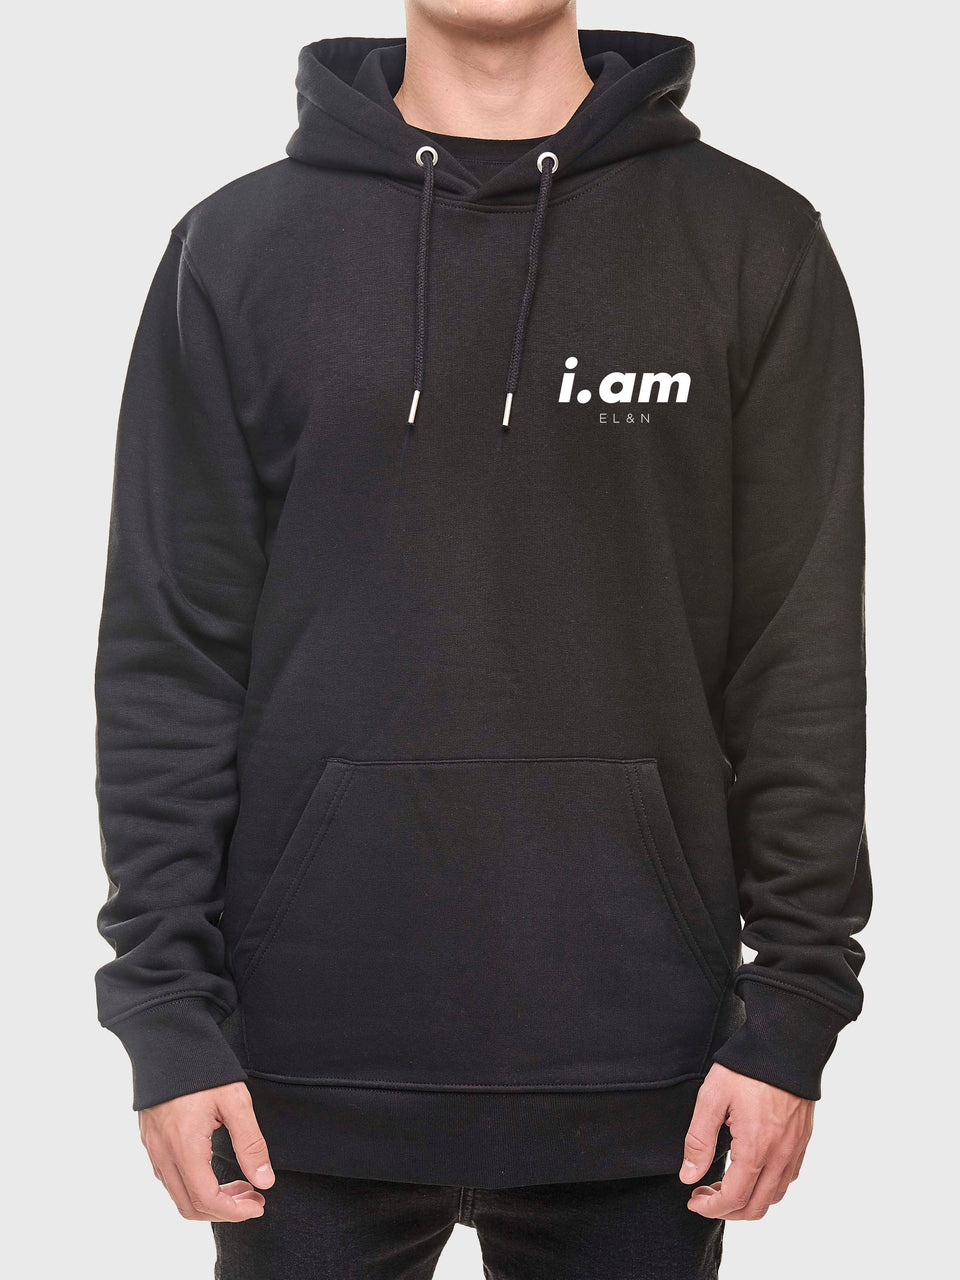 Showing not telling - Black - Unisex pull over hoodie